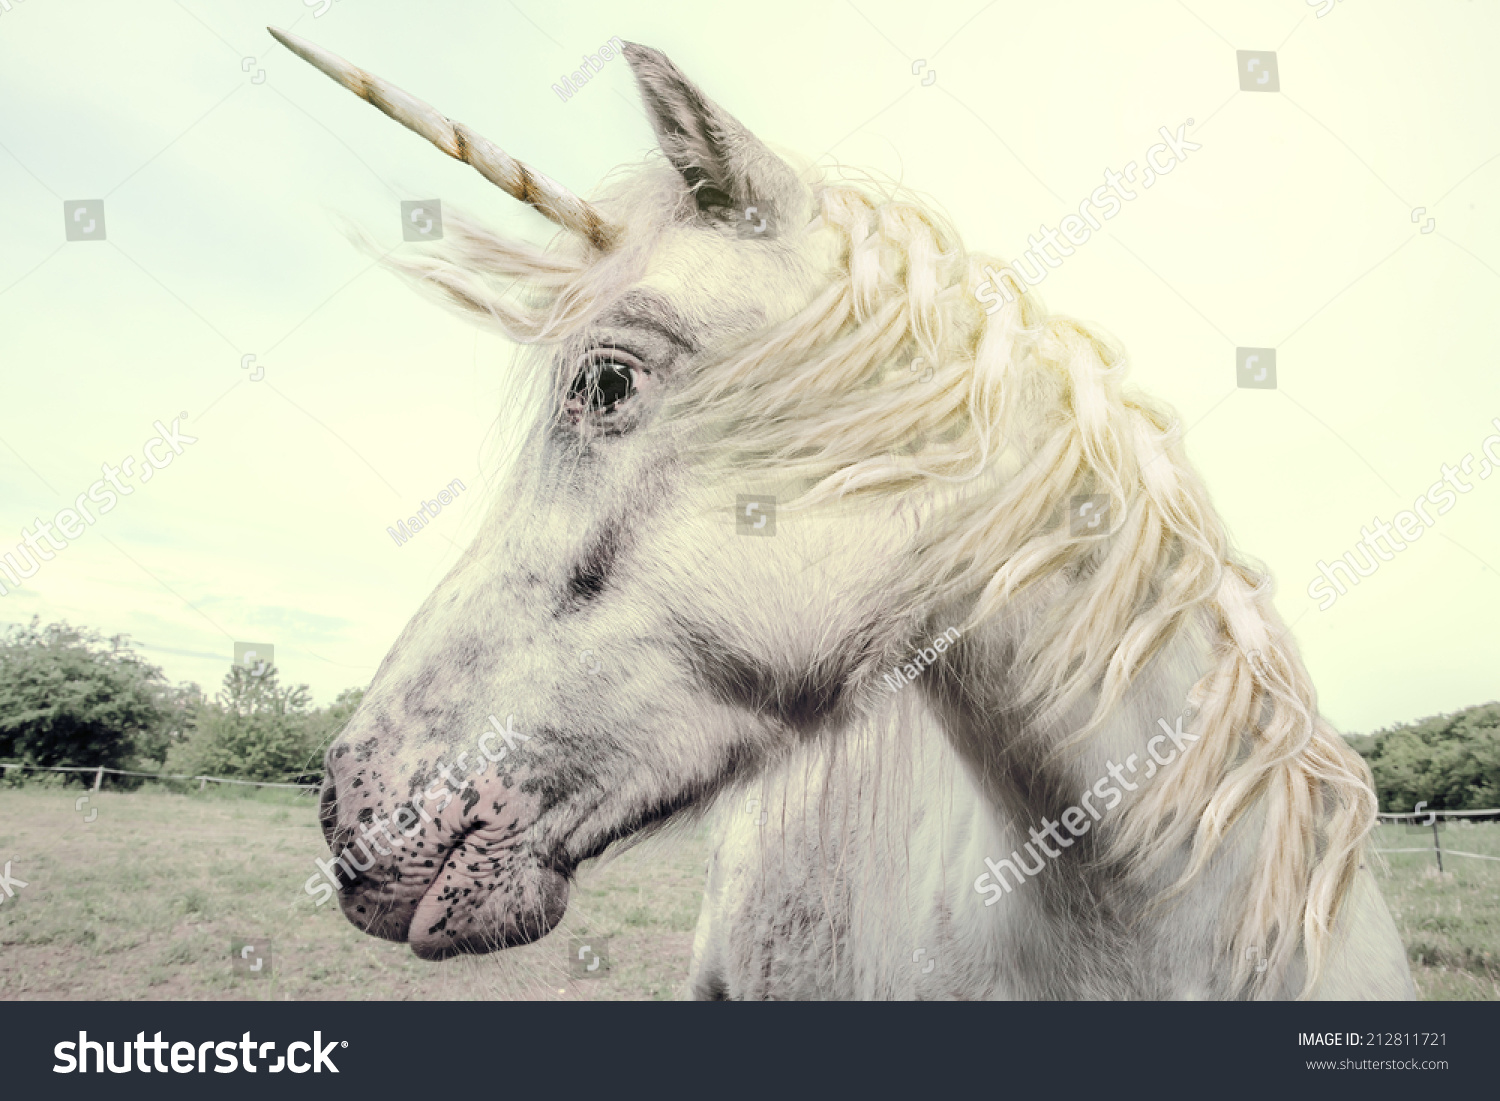 Unicorn Photography Realistic Stock Illustration 212811721 ...